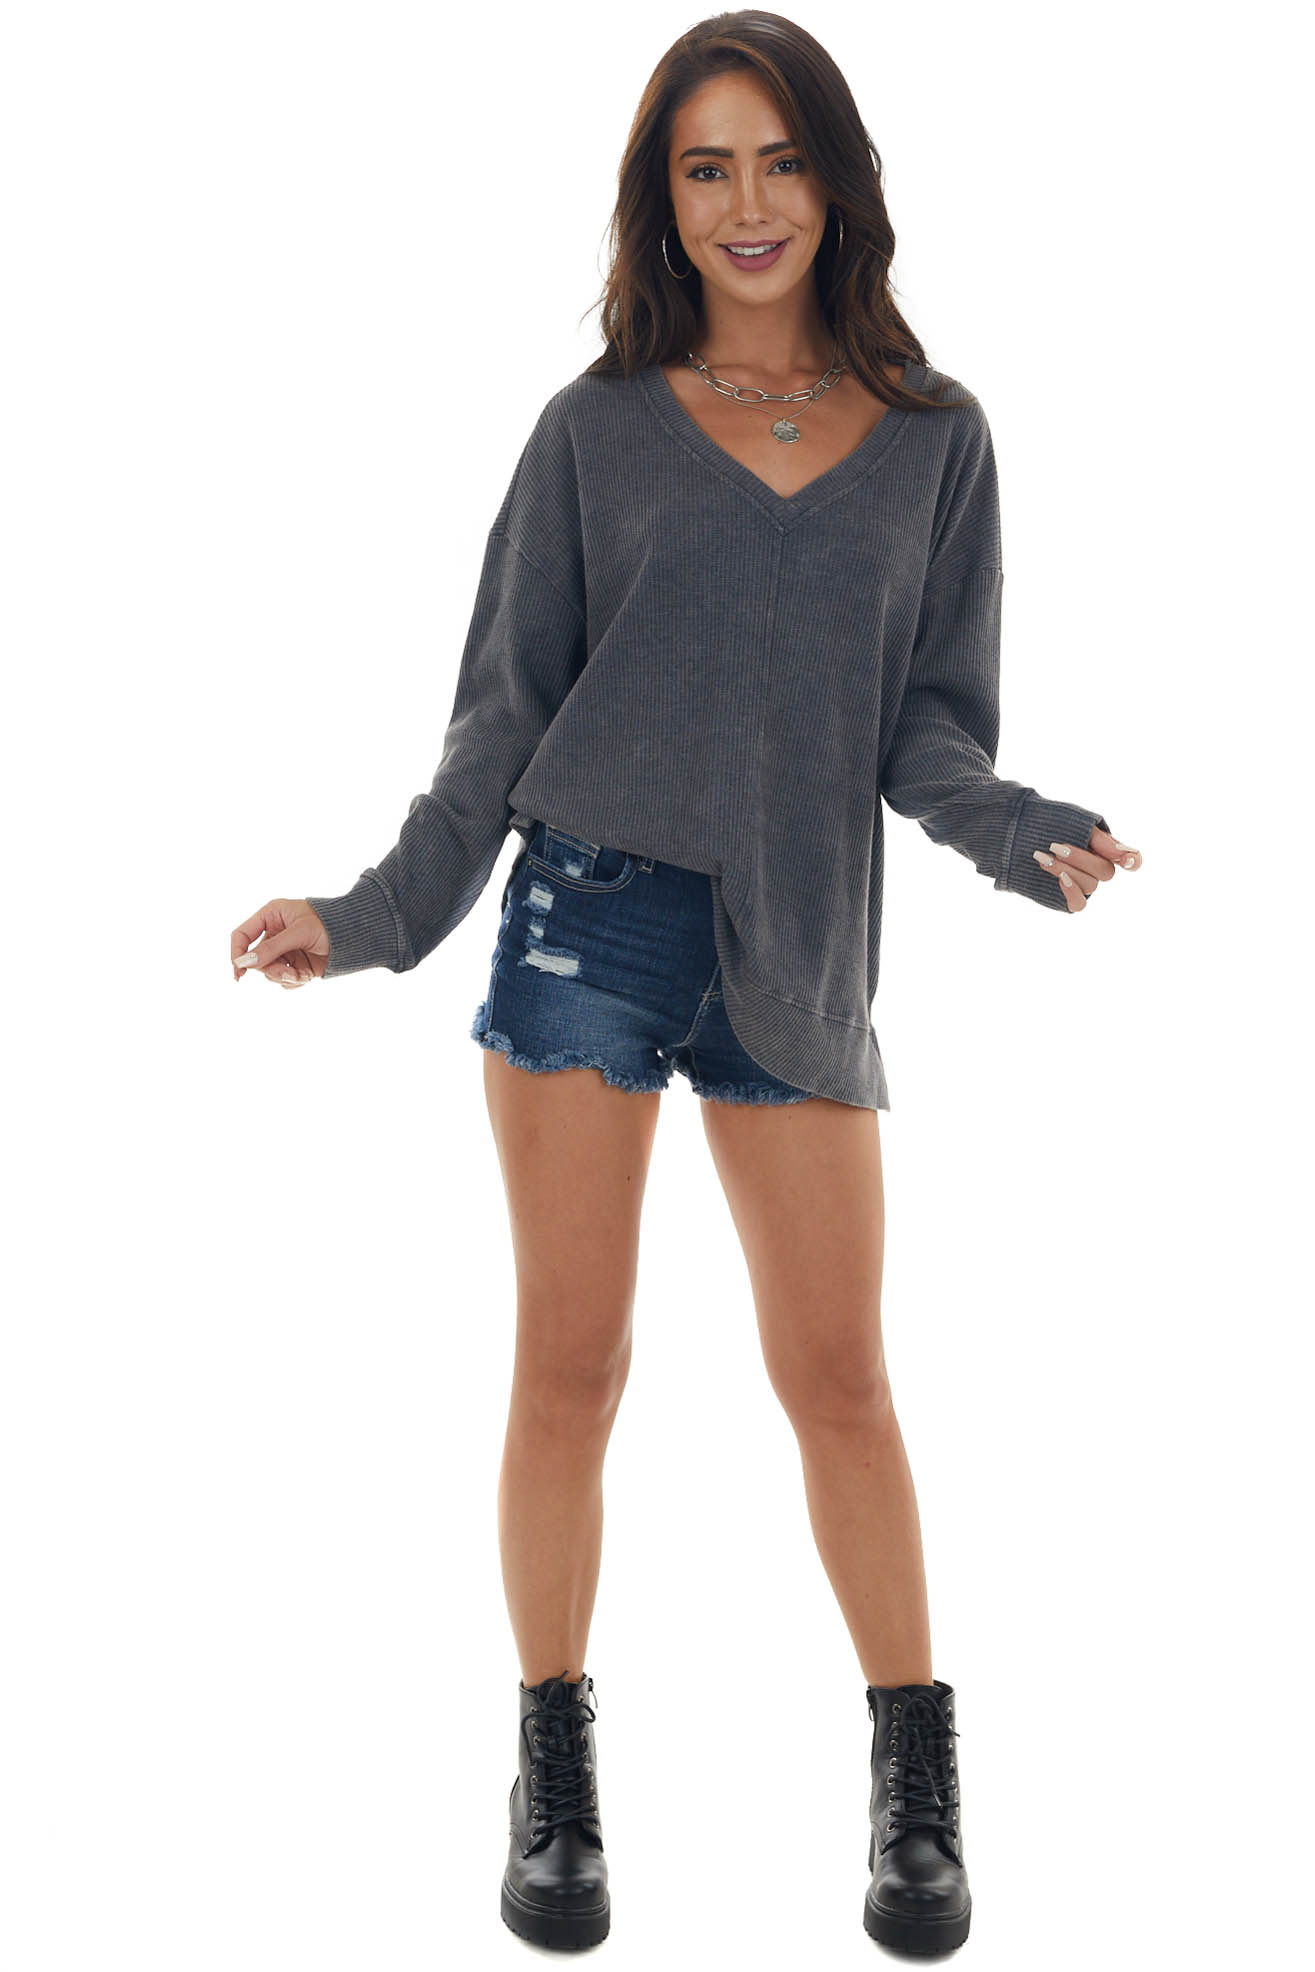 Charcoal Mineral Washed Knit Tunic Top